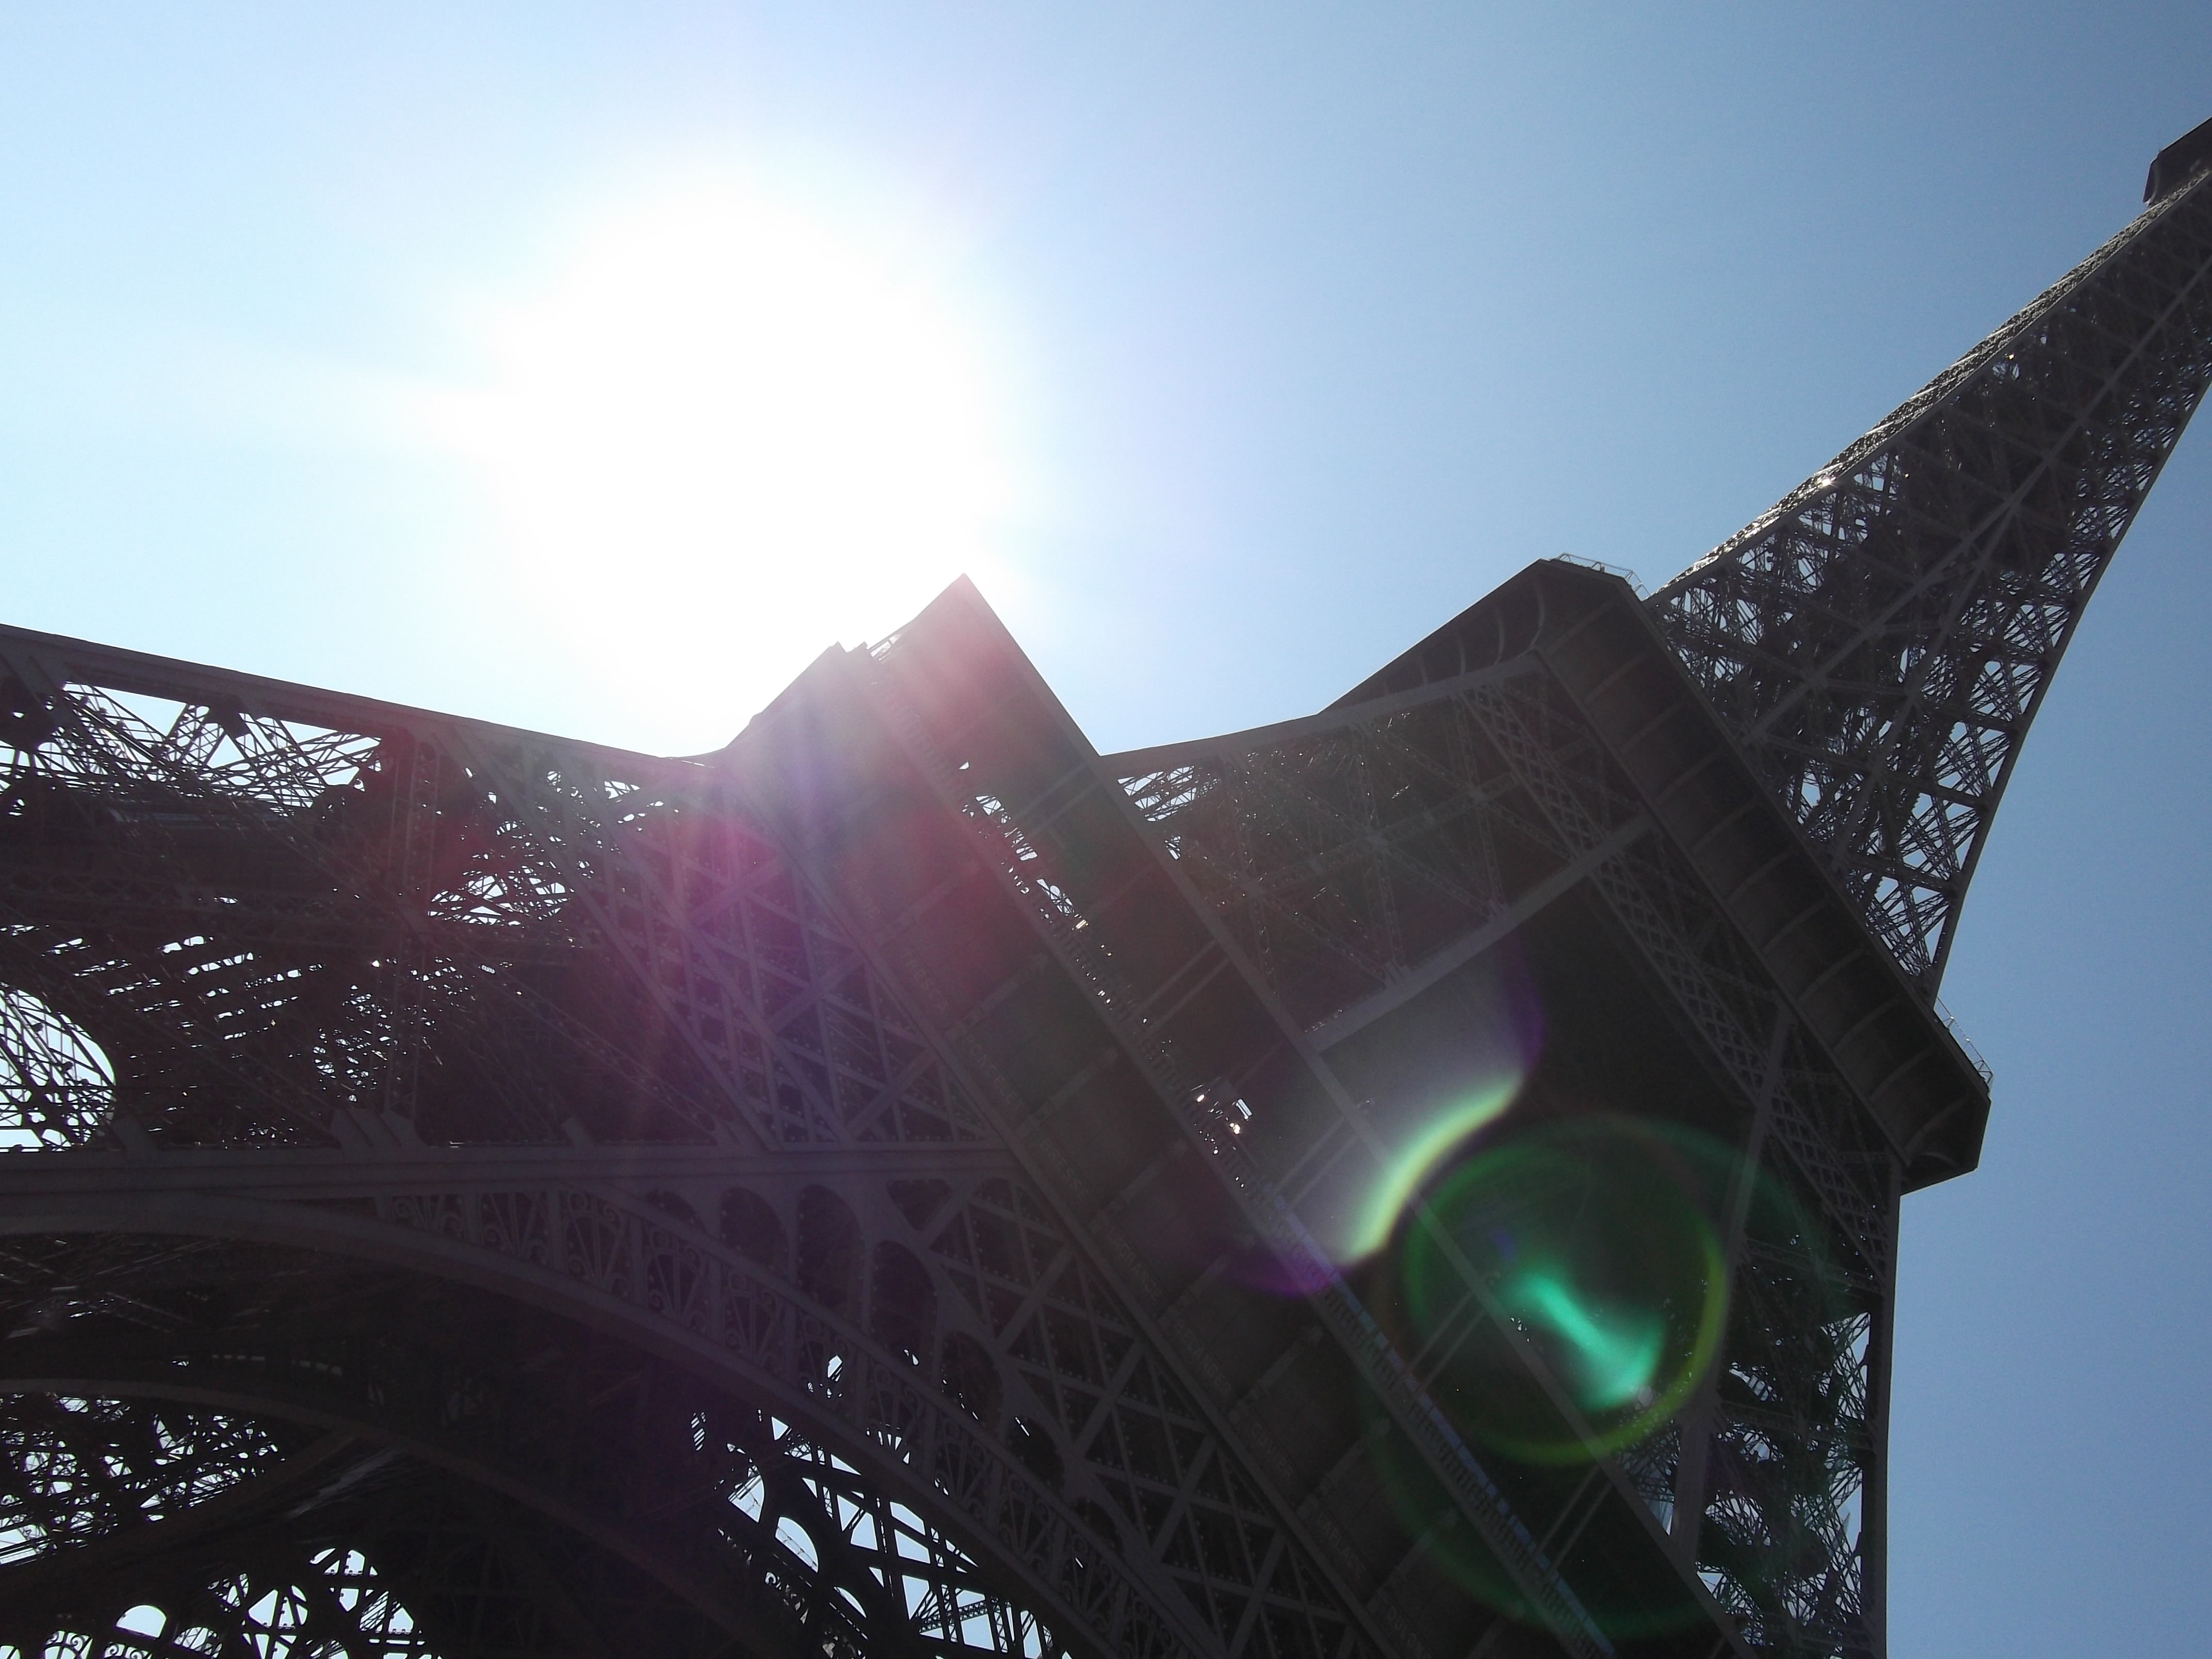 Trying to be arty with the Eiffel Tower